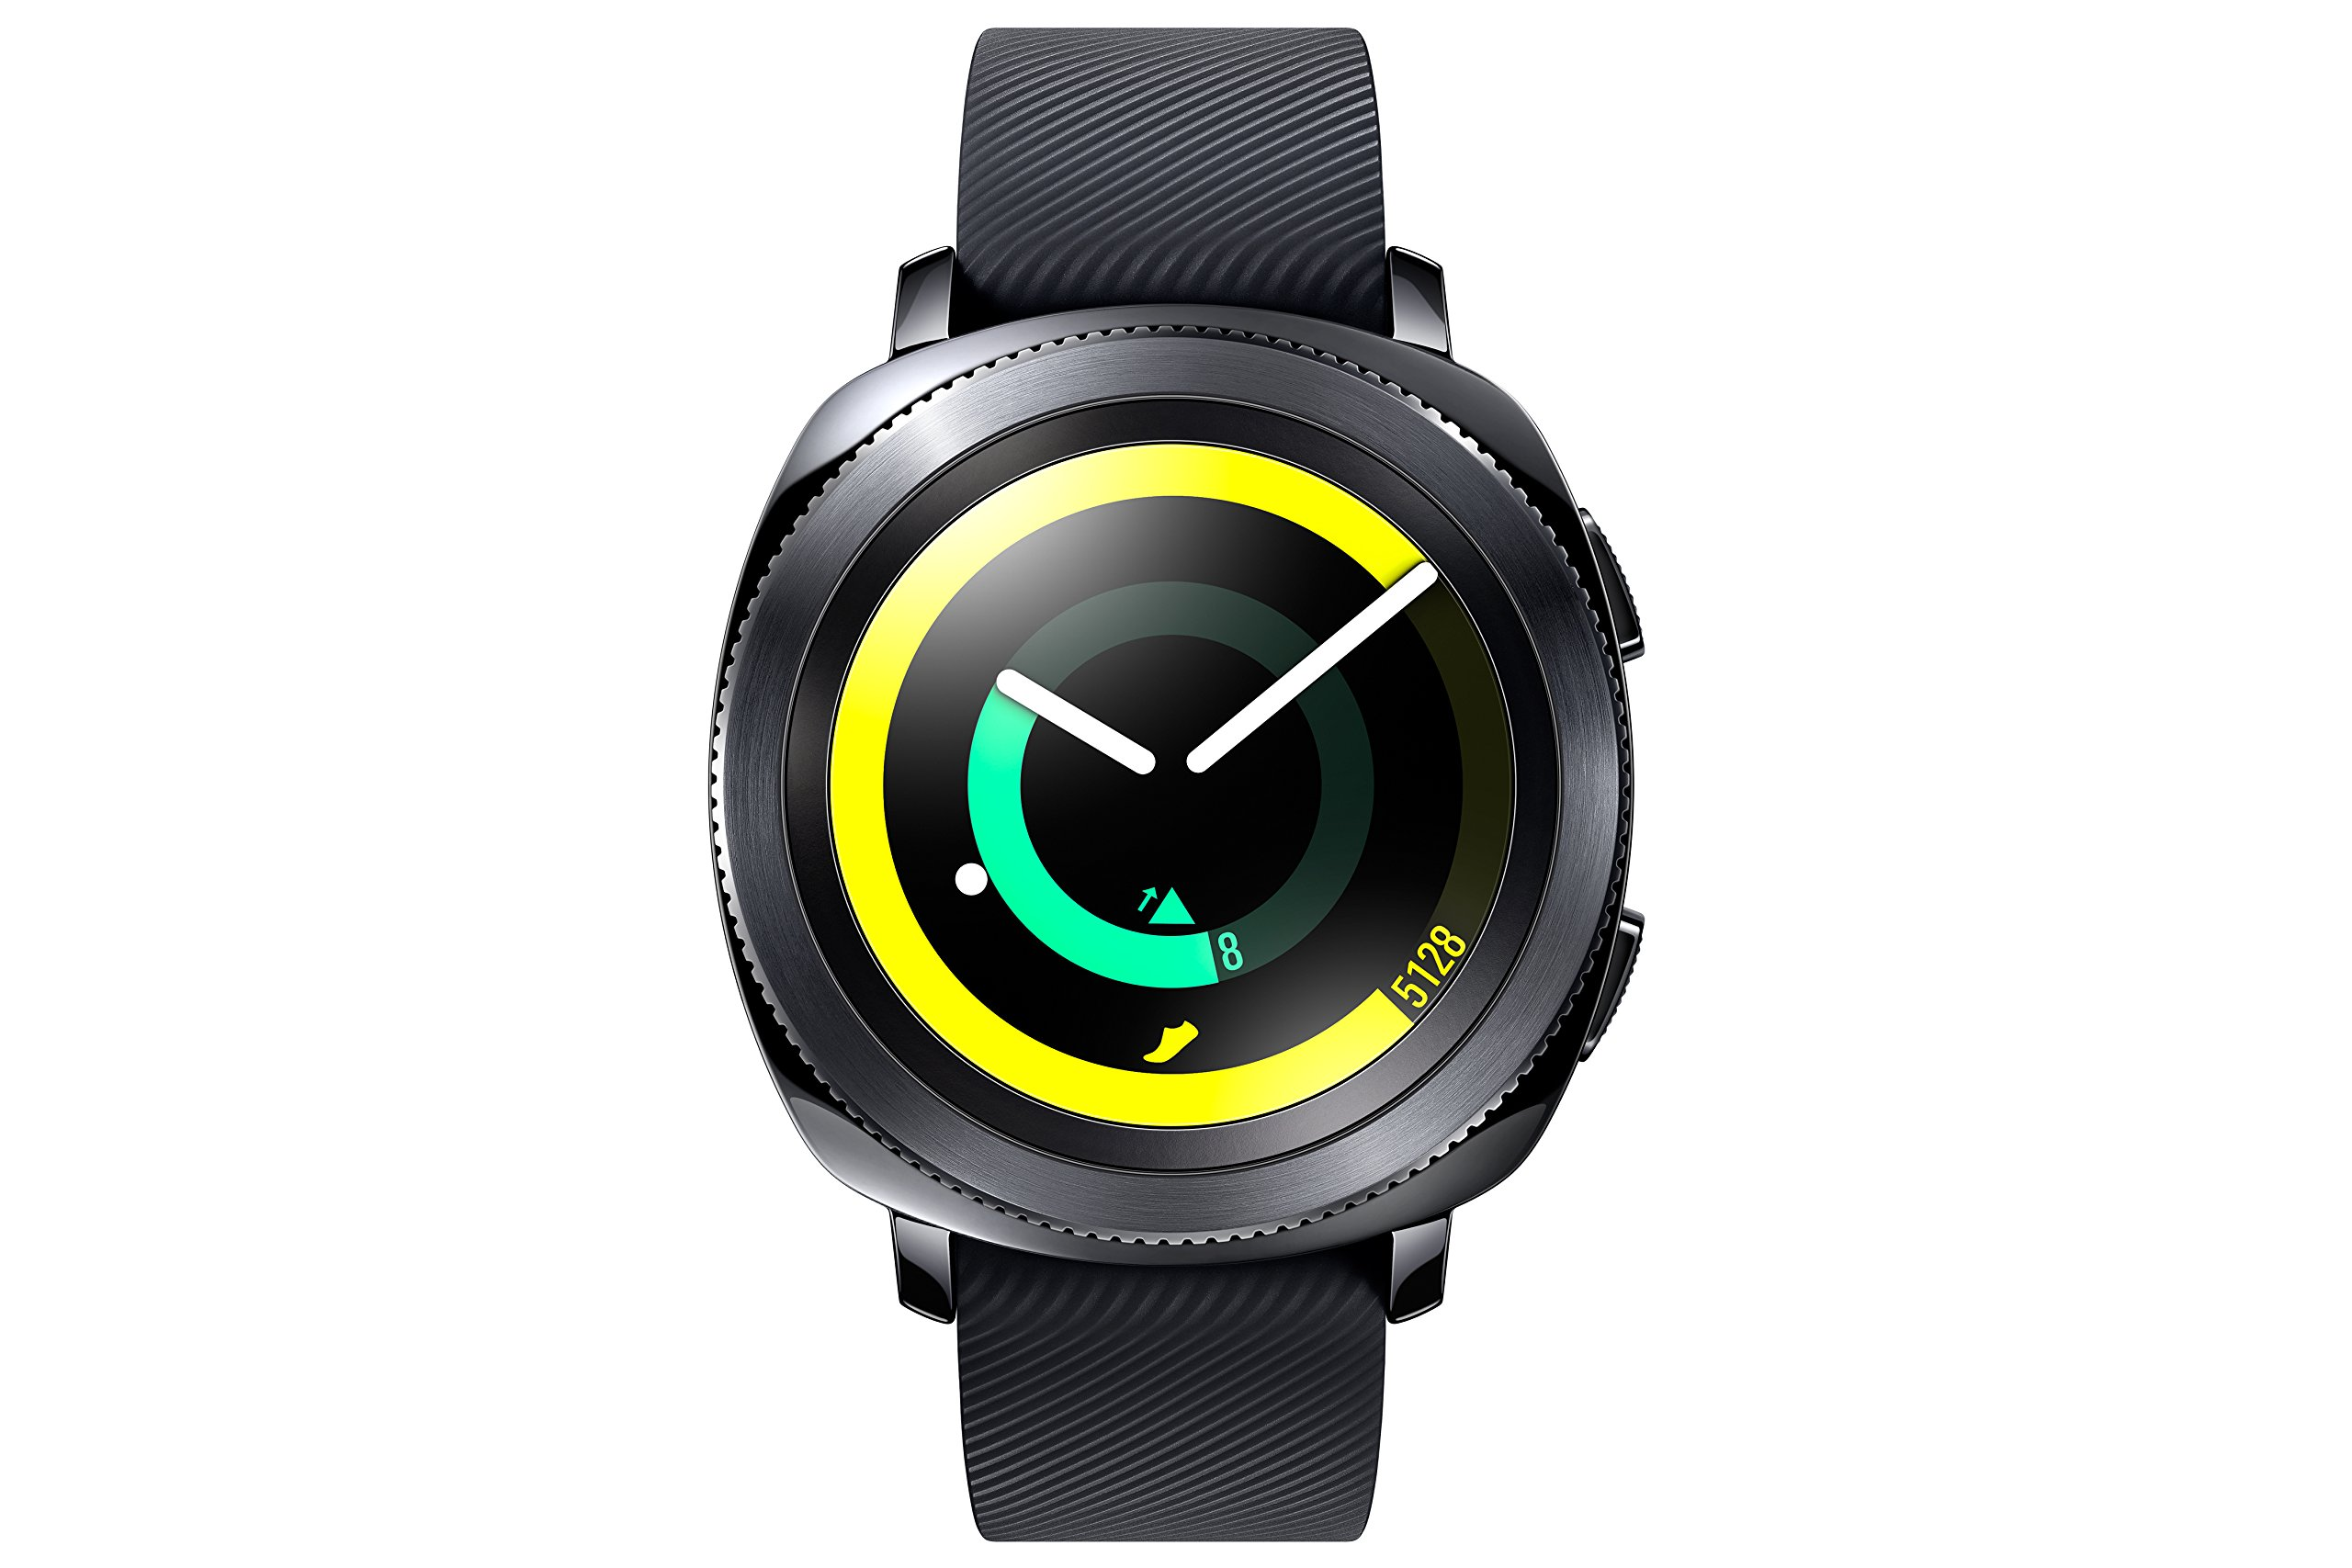 Samsung Gear Sport Smartwatch, GPS, Impermeabile 5ATM, Lettore MP3 Integrato, Nero, [Versione Italiana] product image